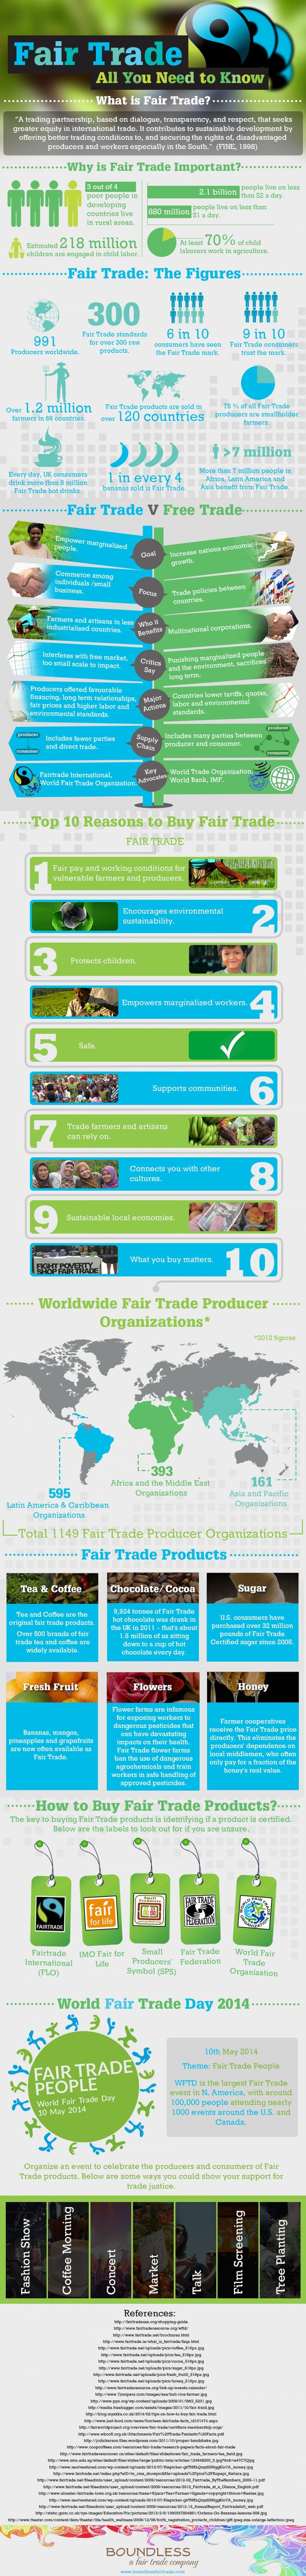 Fair Trade and tourism. All You Need To Know Infographic._BE RESPECTFUL - LIKE IT BEFORE YOU REPIN IT !! _ Sponsored by International Travel Reviews. Rick Stoneking Sr. Tweet ITR @ IntlReviews  Info#@InternationalTravelReviews#.com - (AutoReplyOnly)